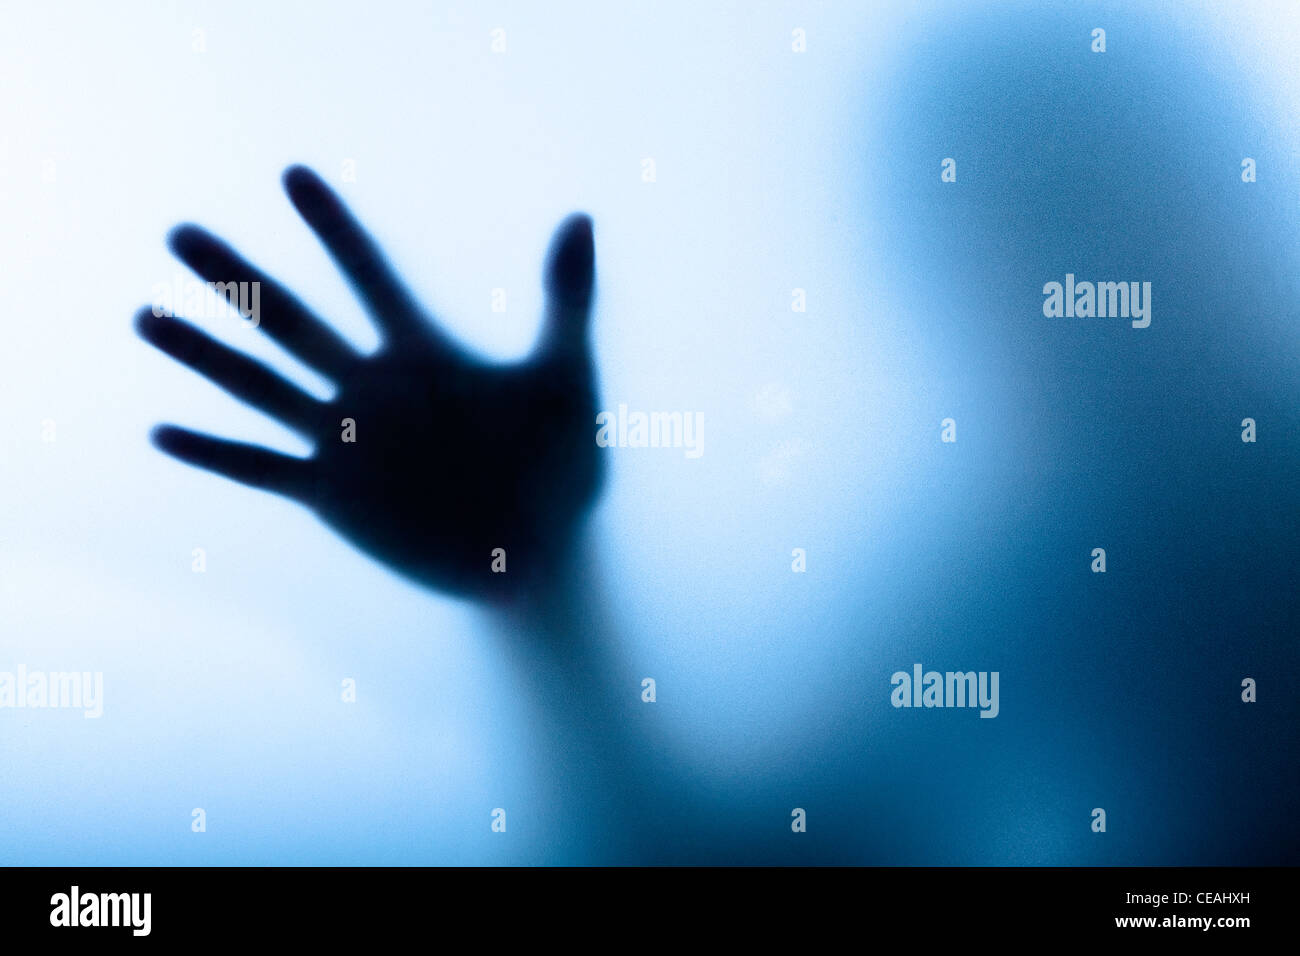 Diffuse image of a hand - Stock Image